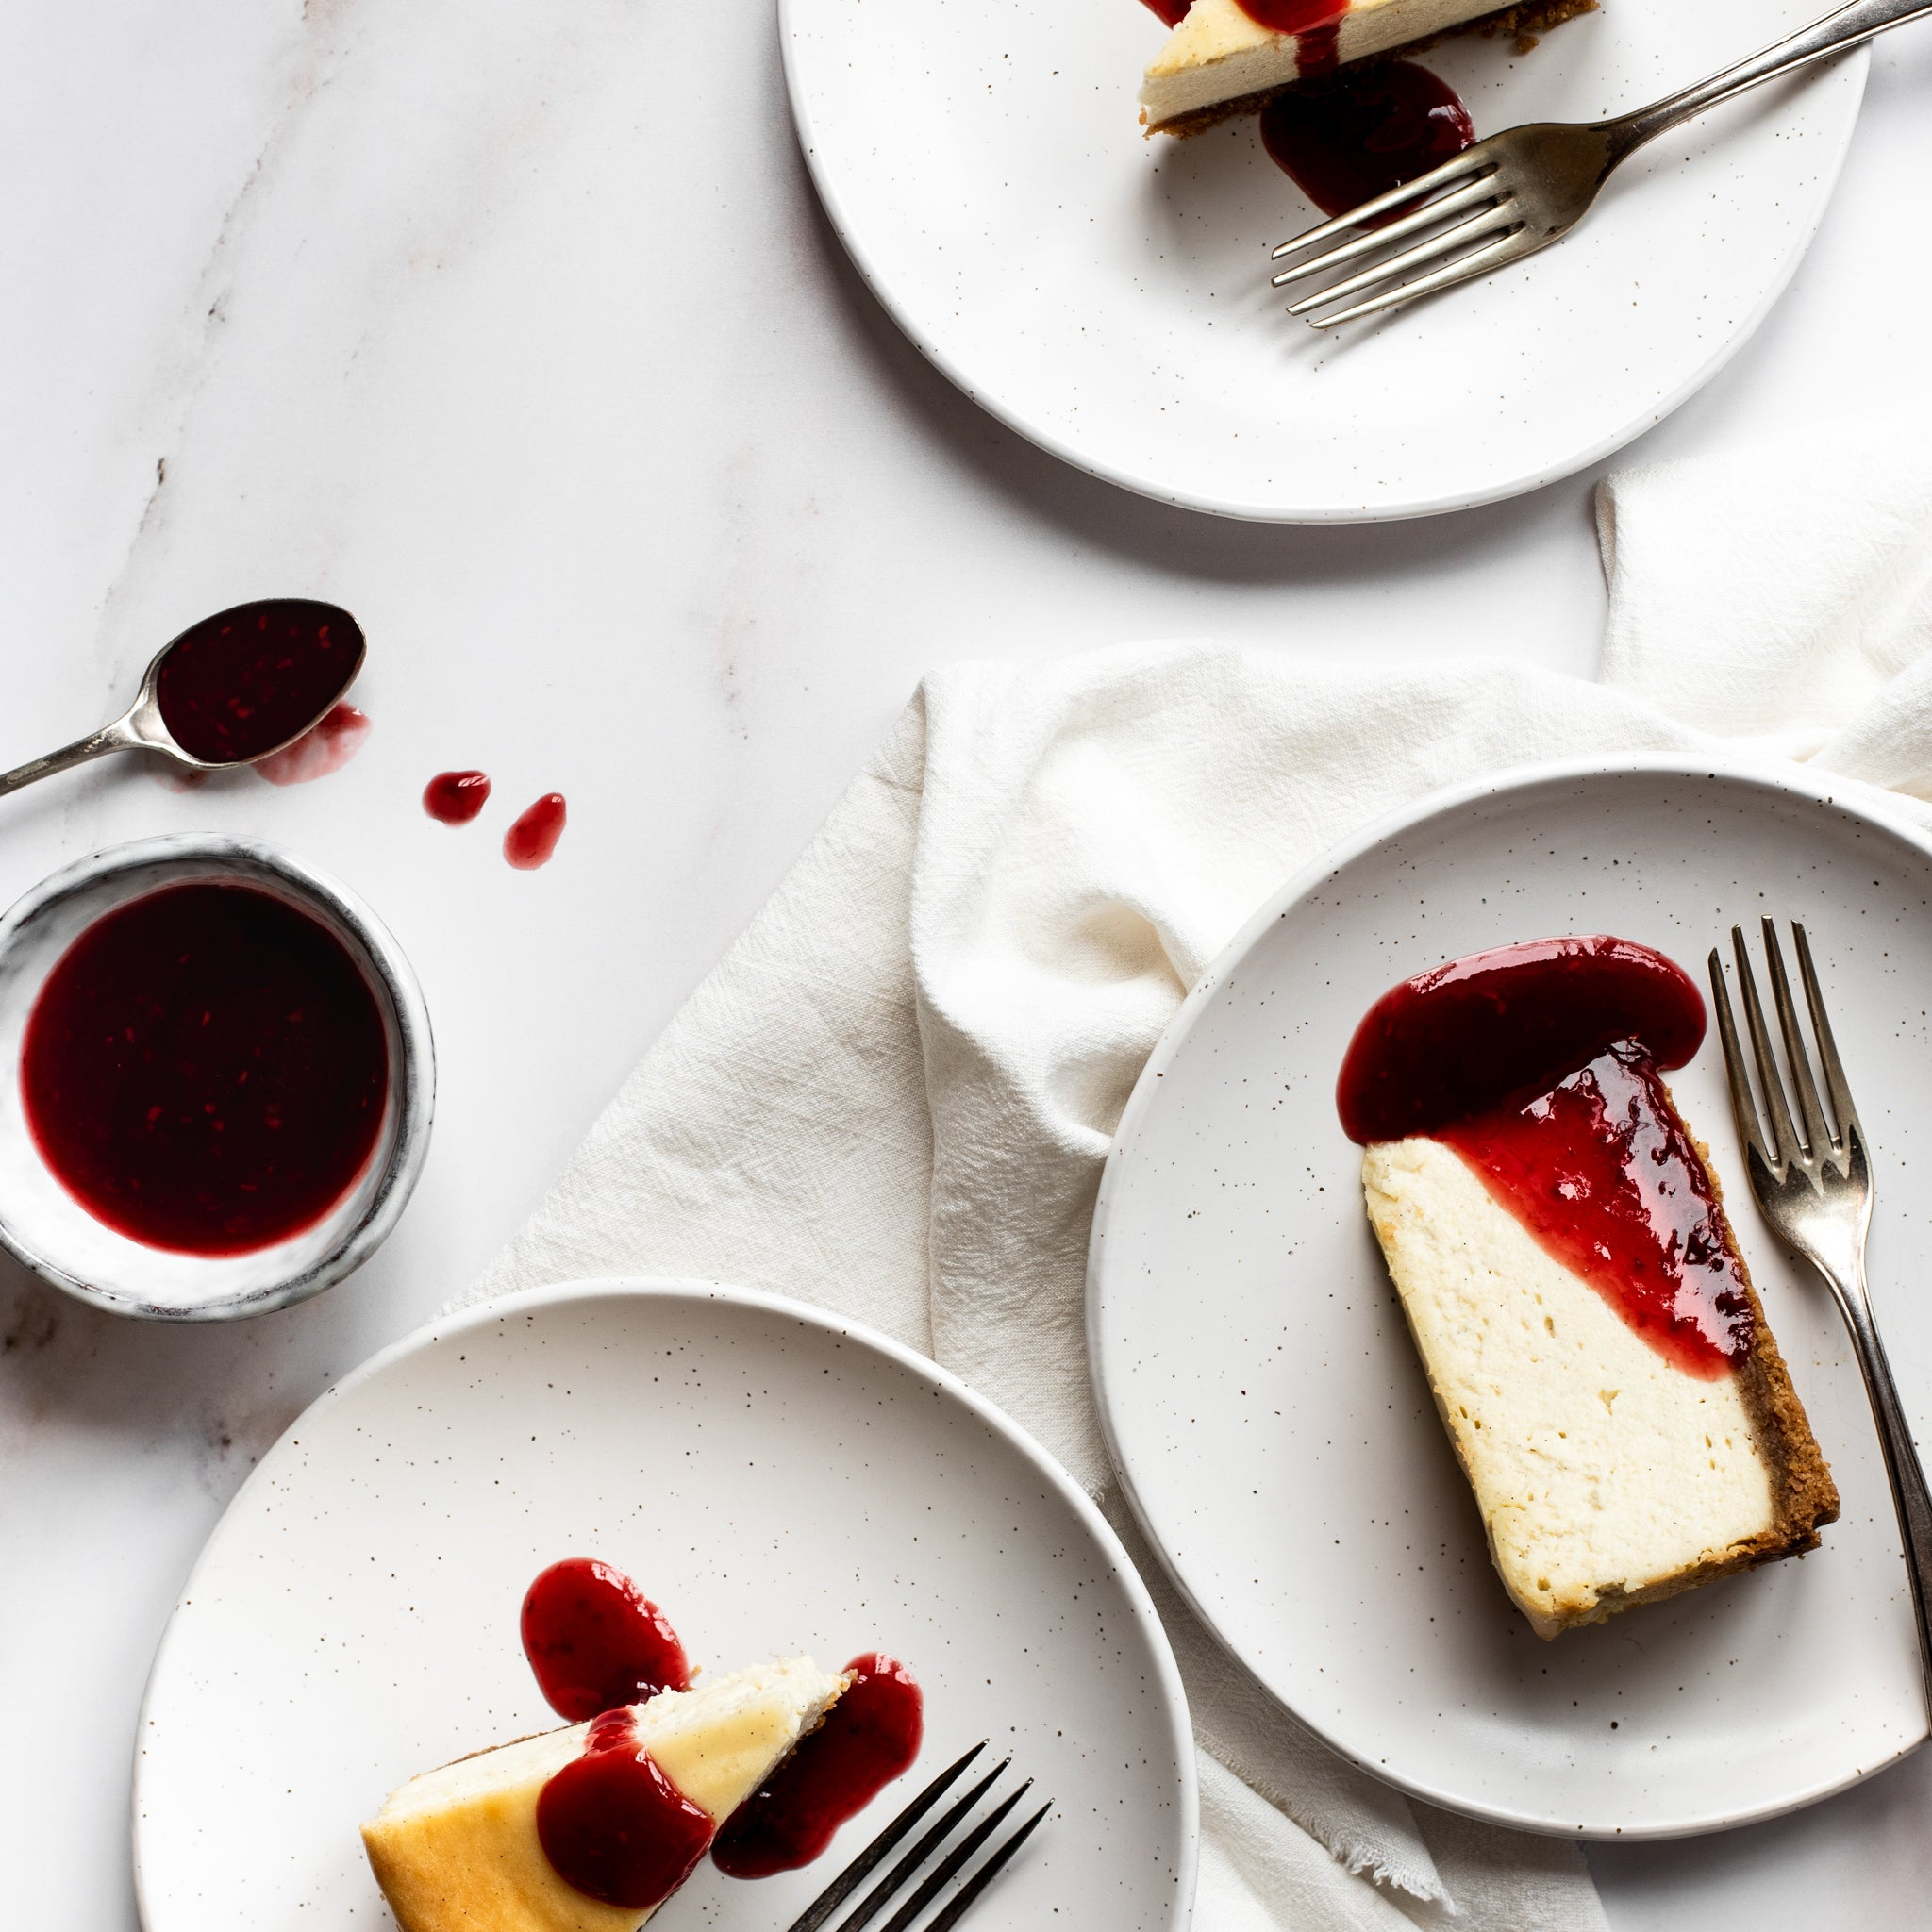 Baked-Cheesecake-SQUARE-4.jpg